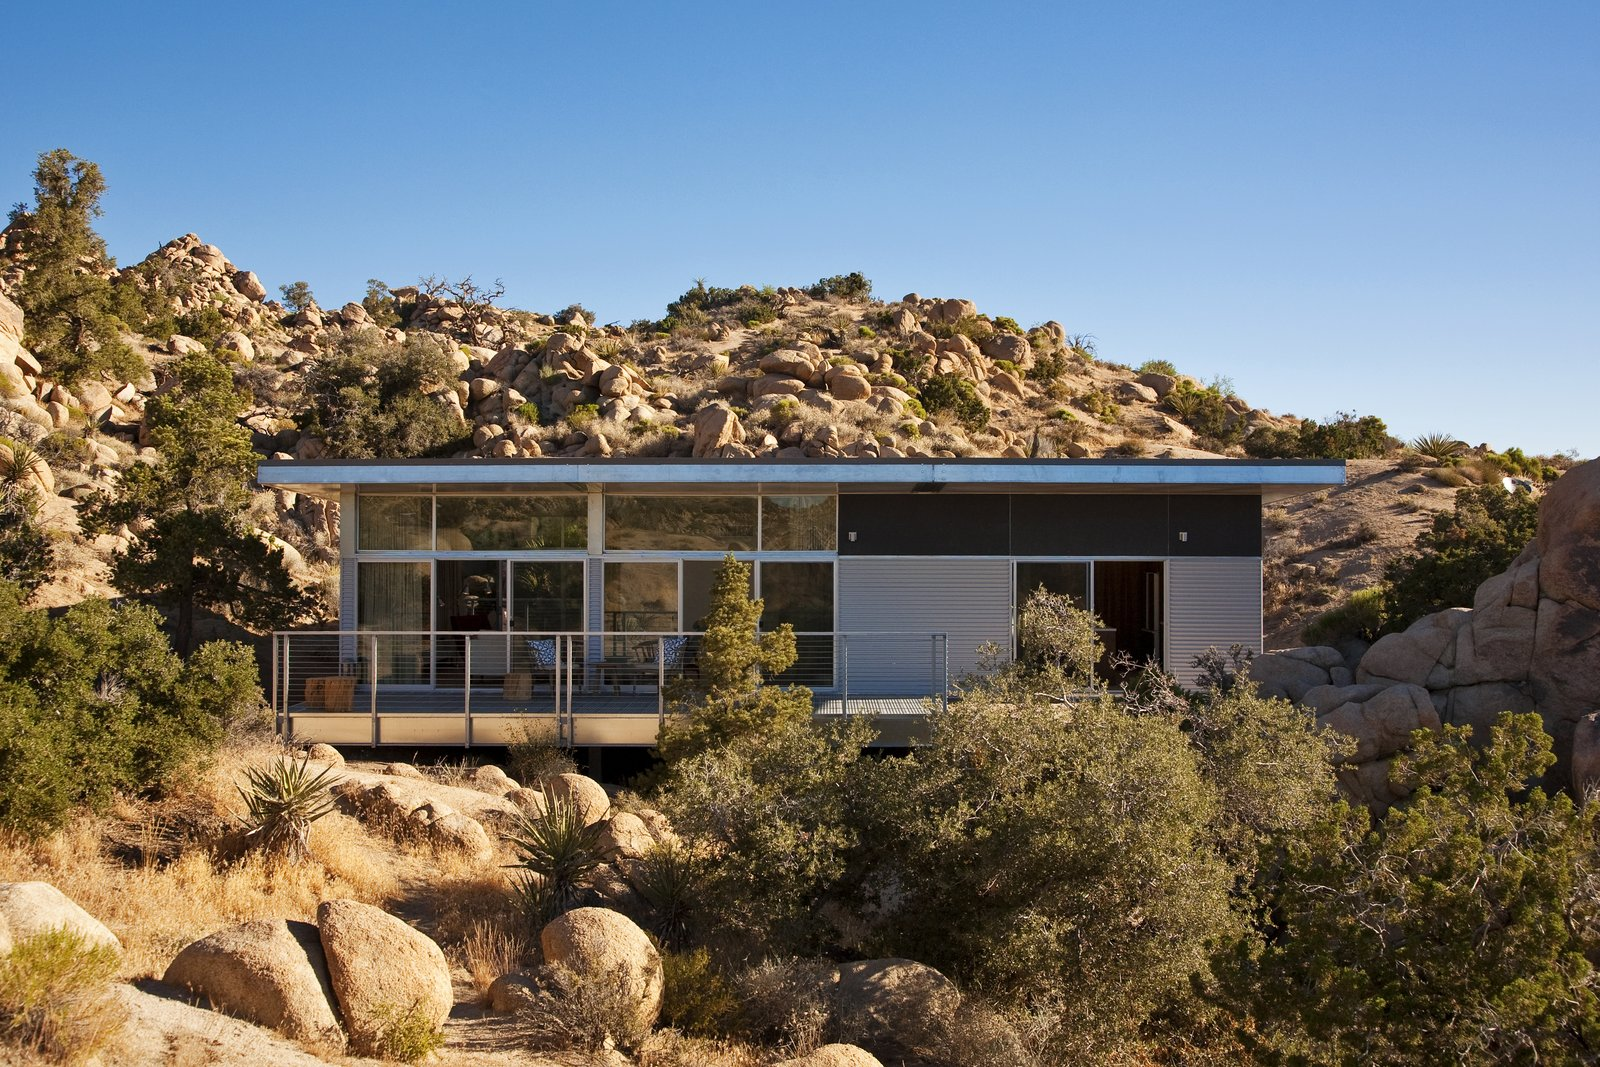 Beautiful Prefabs from Offered at $674K, This Hybrid Prefab Is in Tune With the Californian Desert